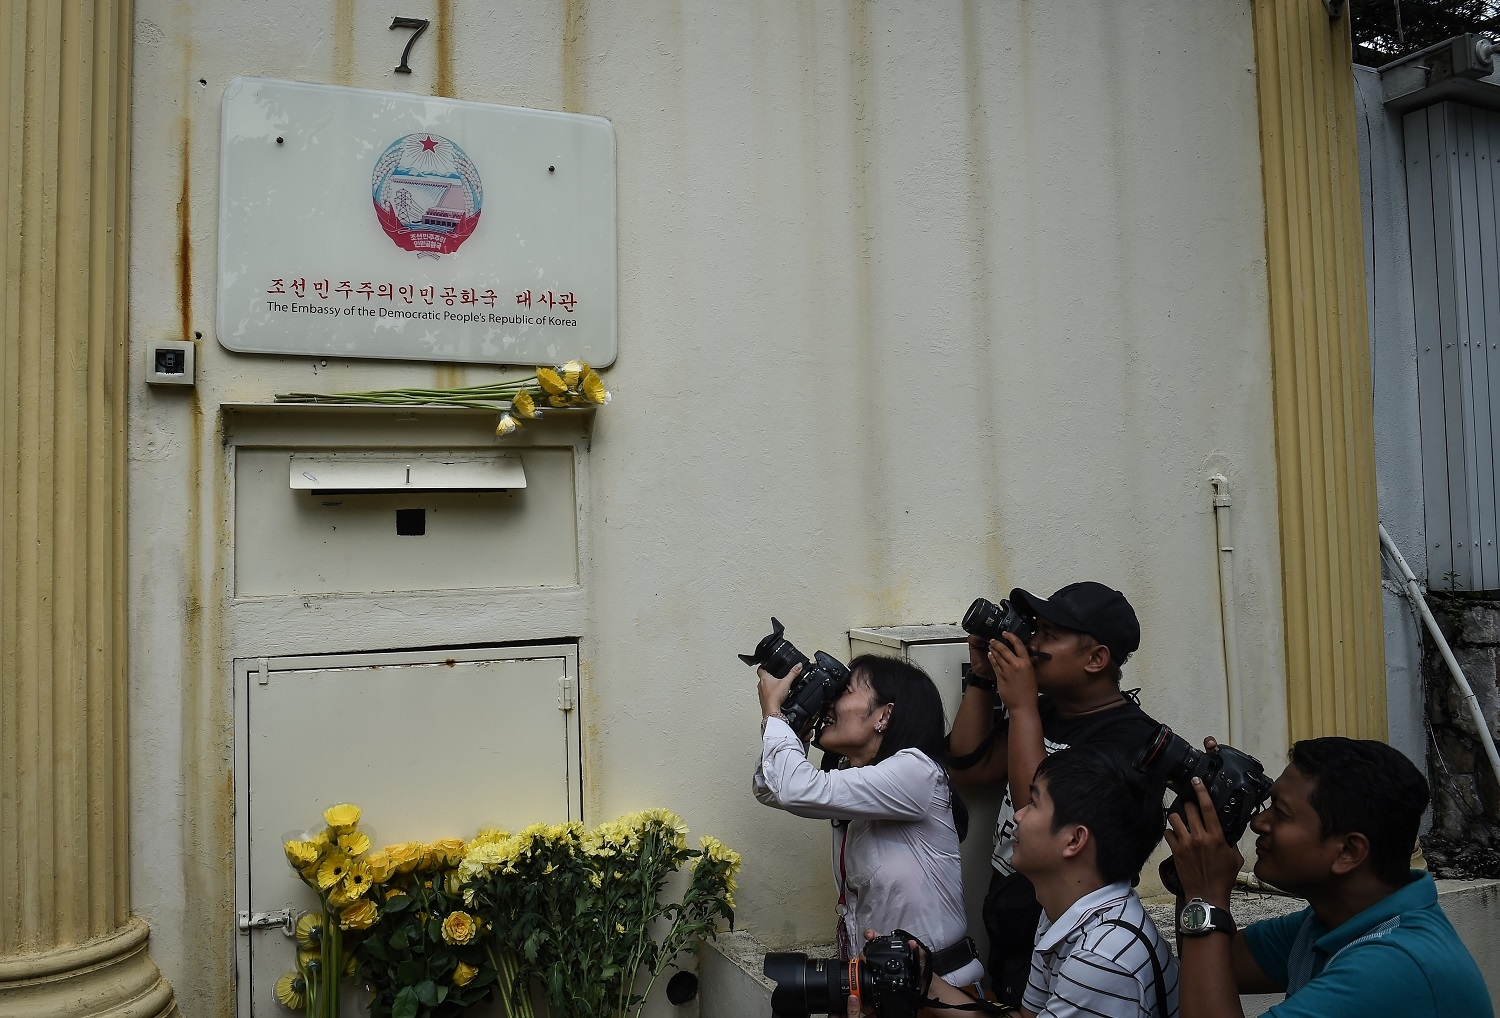 Members of the media take photos of flowers left by Malaysian youth NGO, Solidariti Anak Muda Malaysia, who called for peace and diplomatic cooperation between Malaysia and North Korea, at the North Korean embassy in Kuala Lumpur on March 10, 2017.